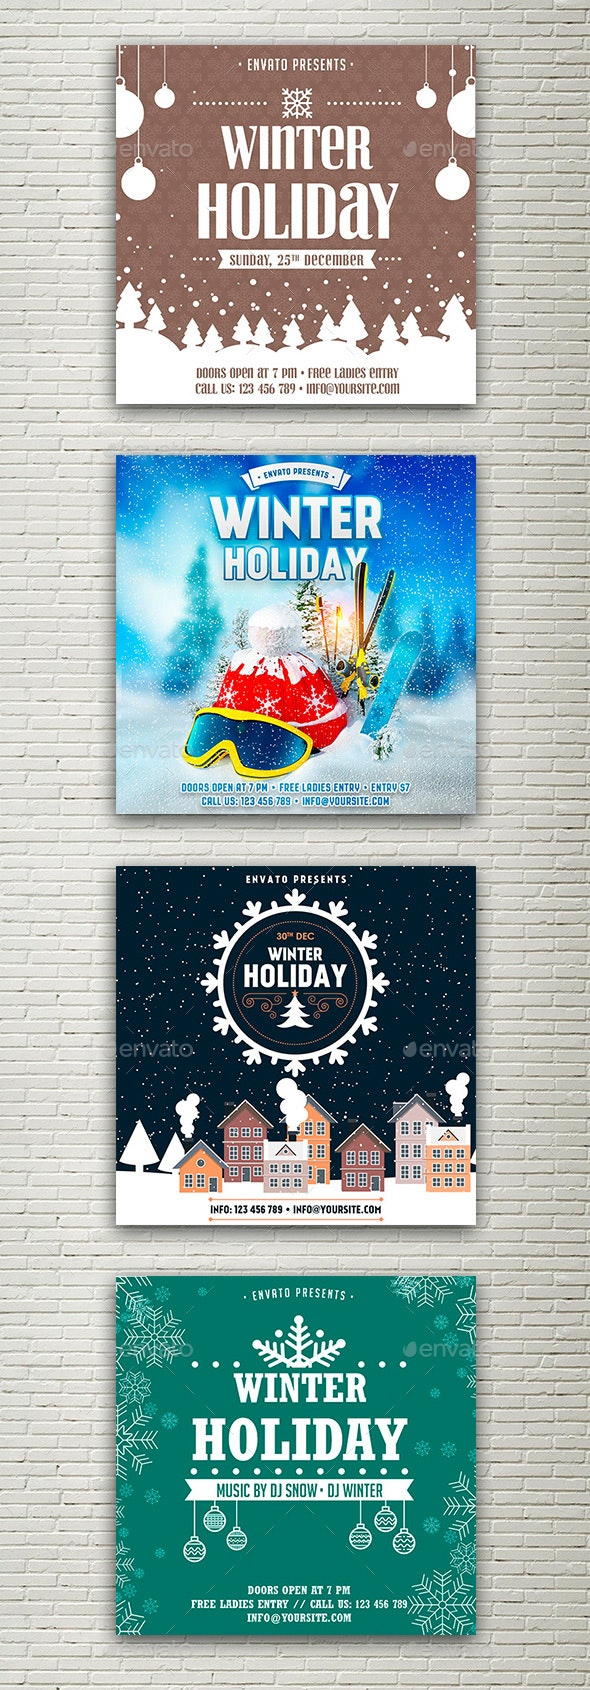 Winter Holiday Facebook and Instagram Banner - Social Media Web Elements